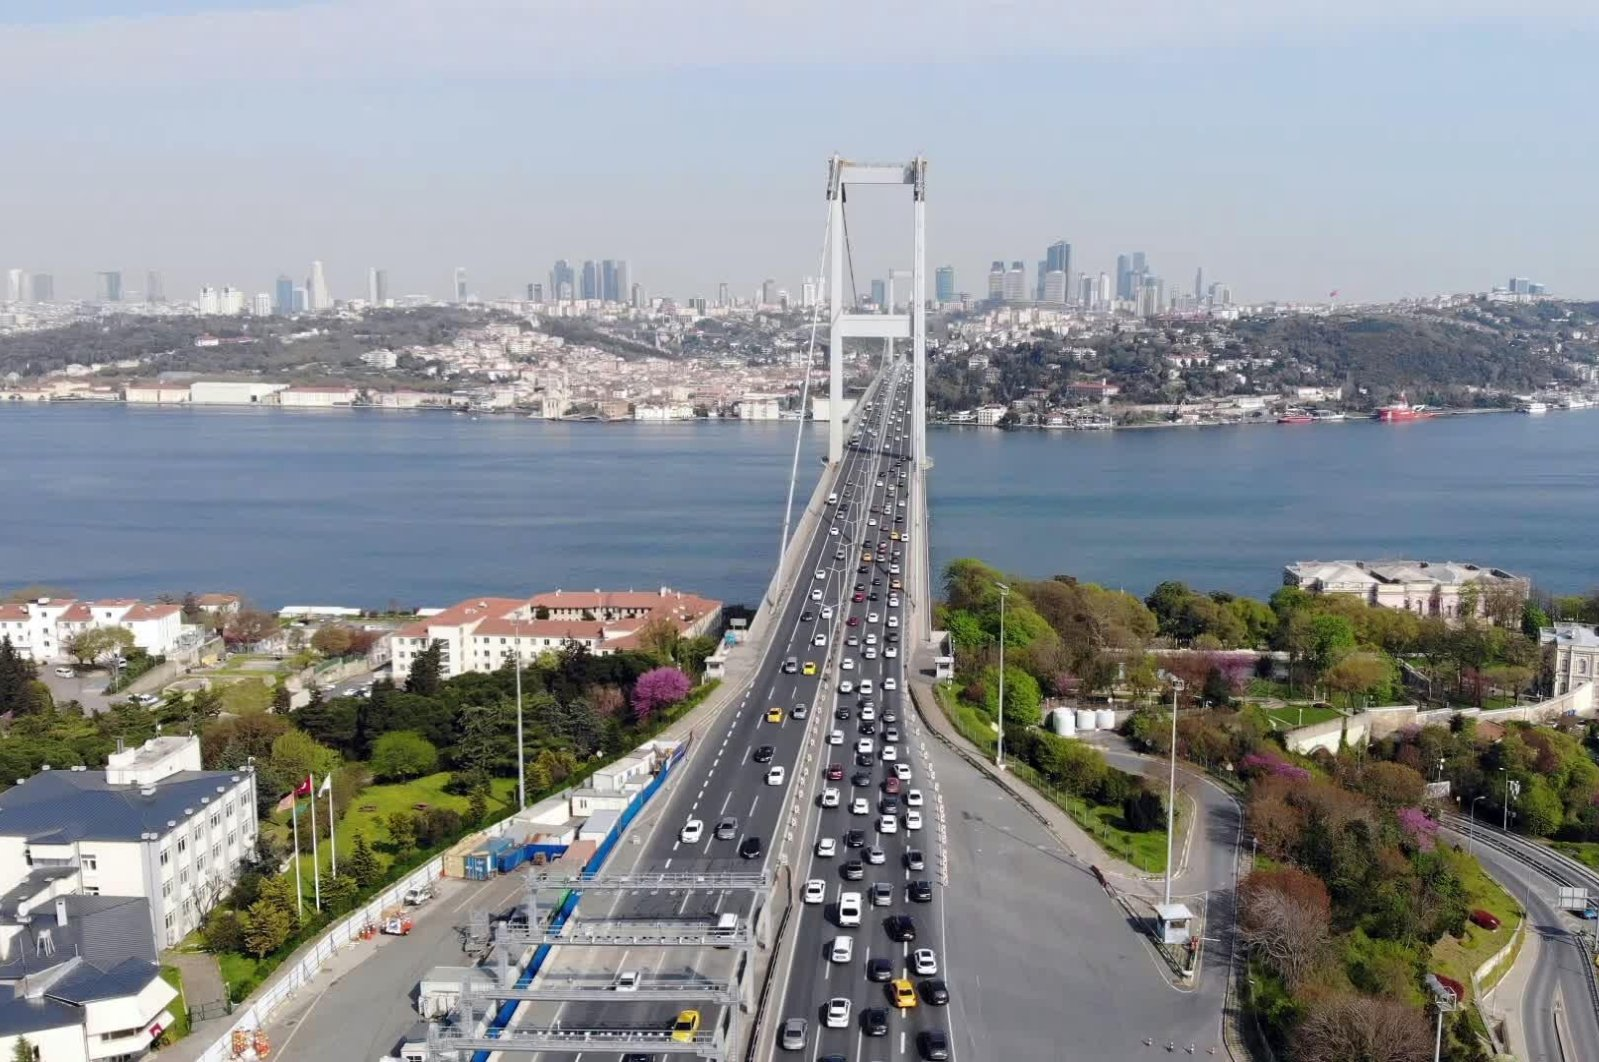 Traffic on July 15 Martyrs' Bridge after the end of a four-day curfew, in Istanbul, Turkey, April 27, 2020. (İHA Photo)